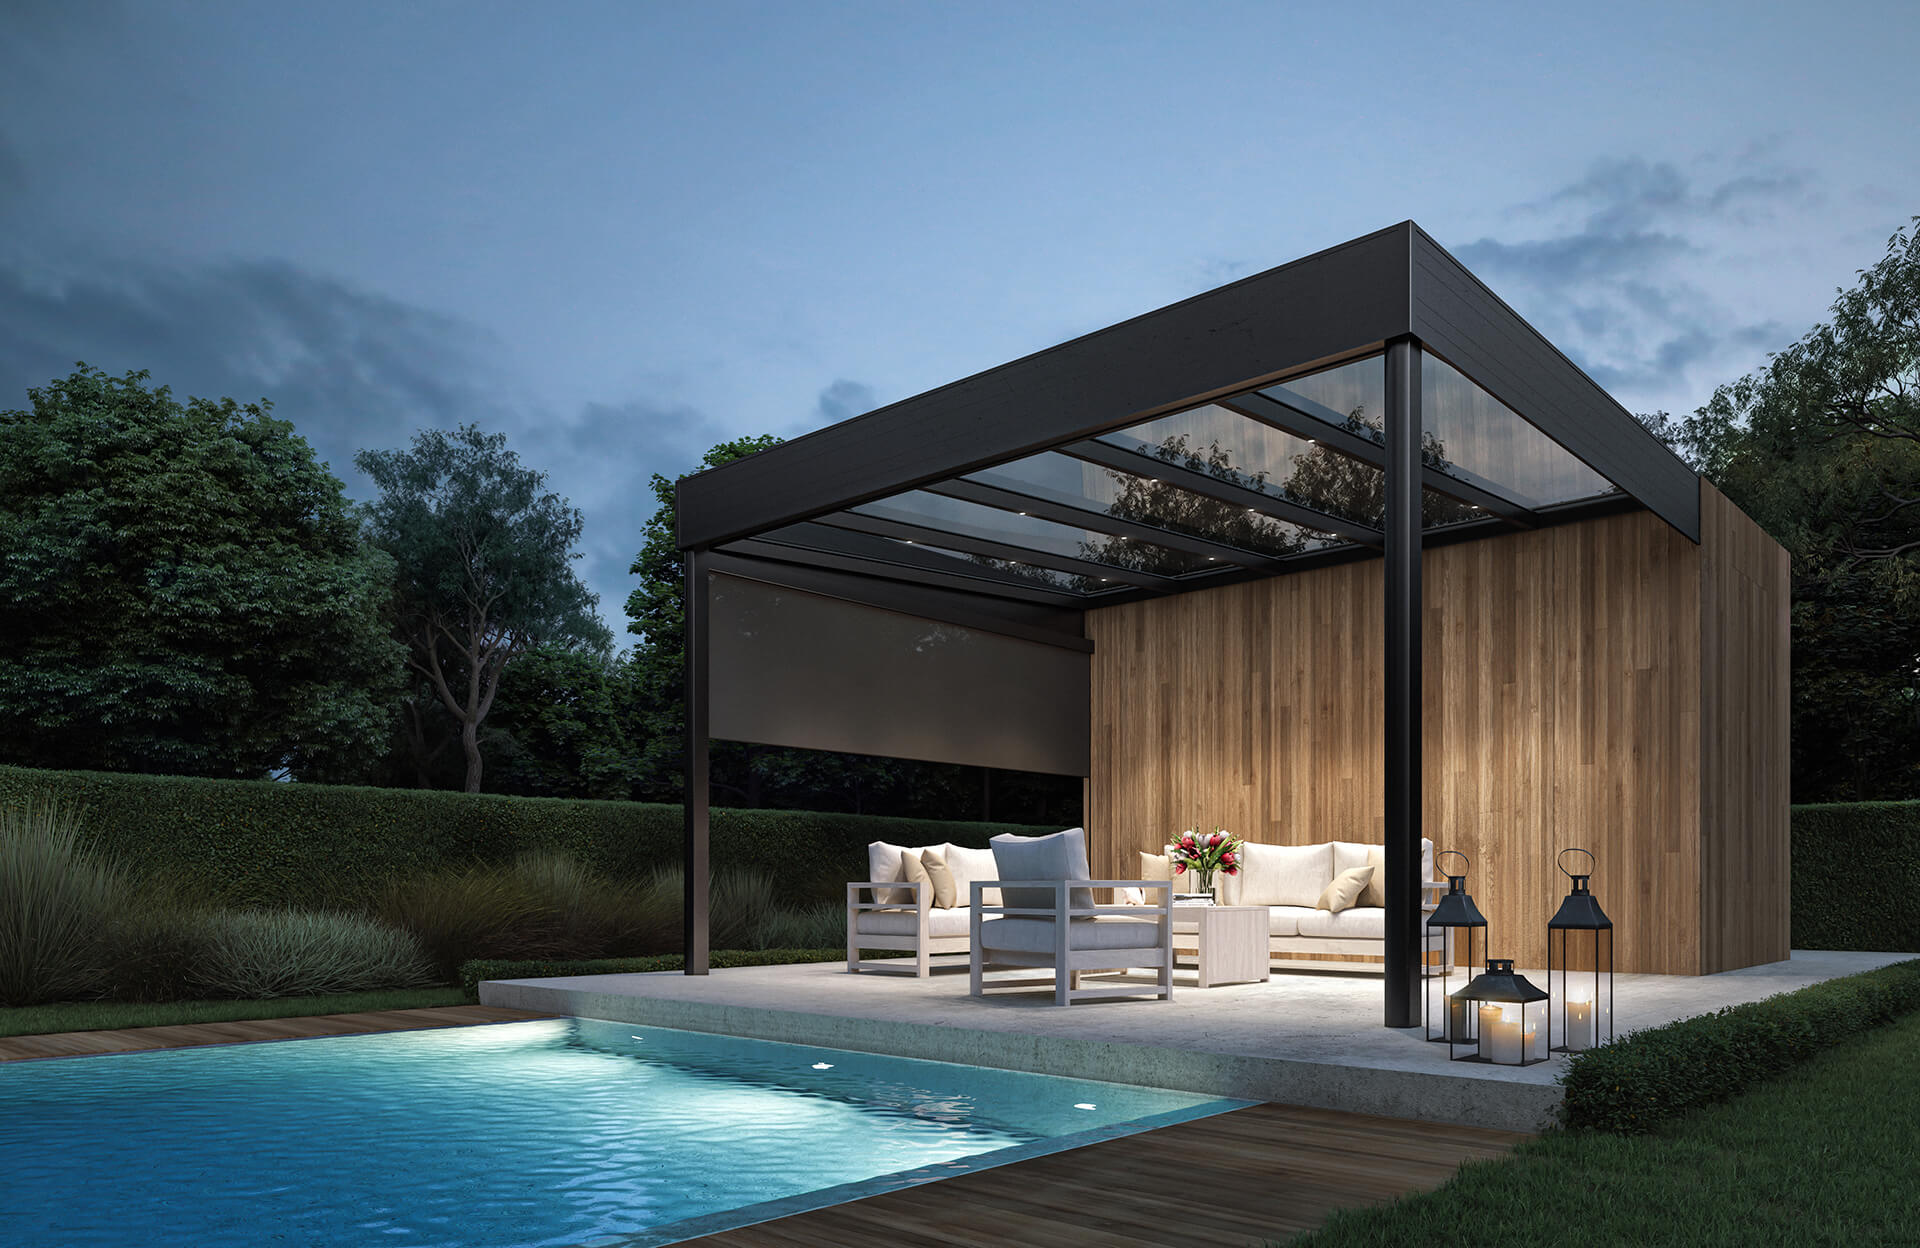 AGI Concepts - Canopies by the pool